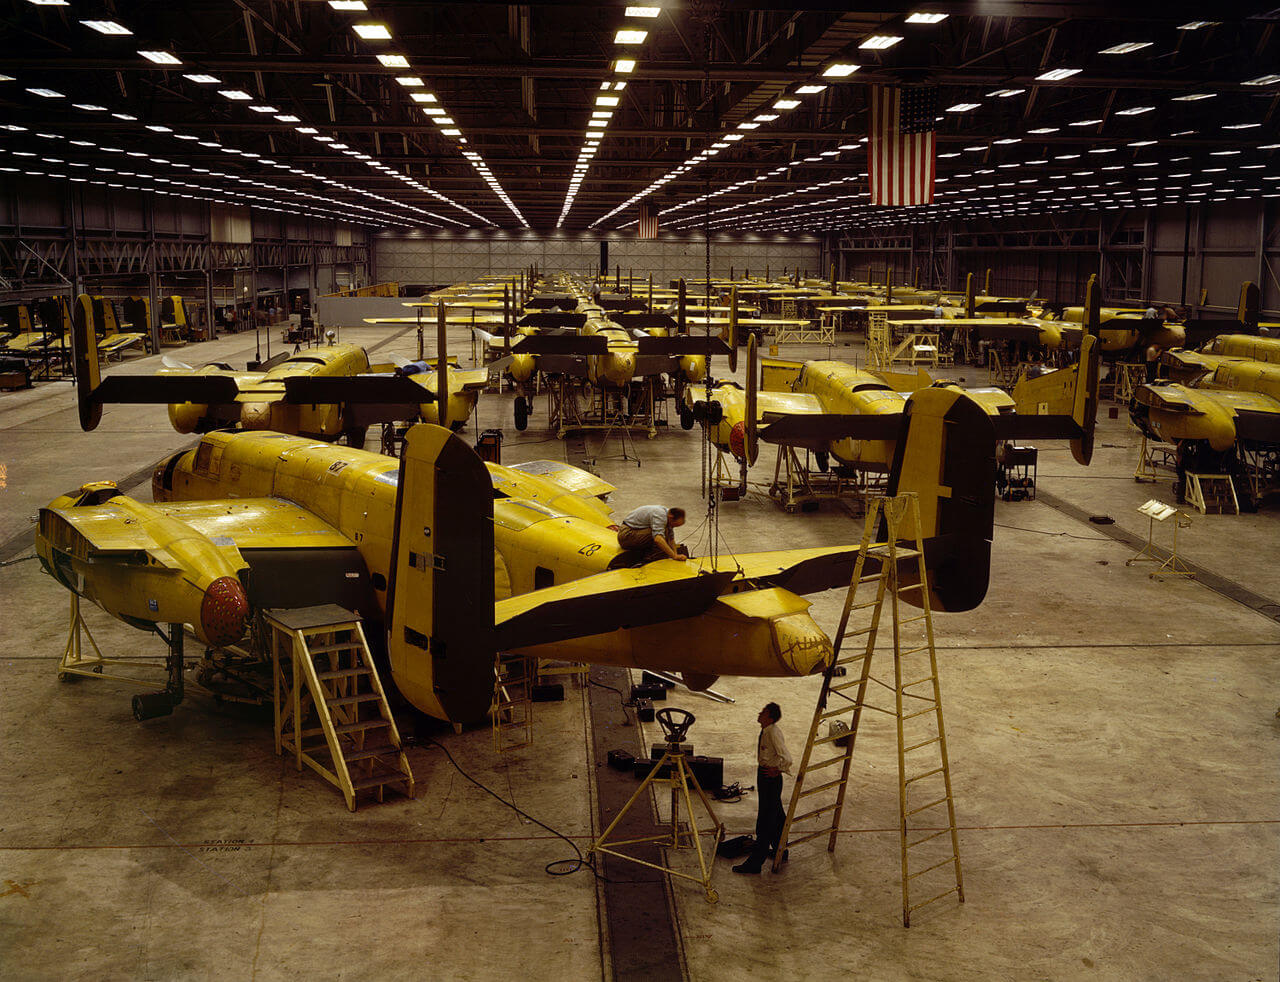 Workers assemble B25 Mitchell airplane (October 1942) - Kansas City, KS